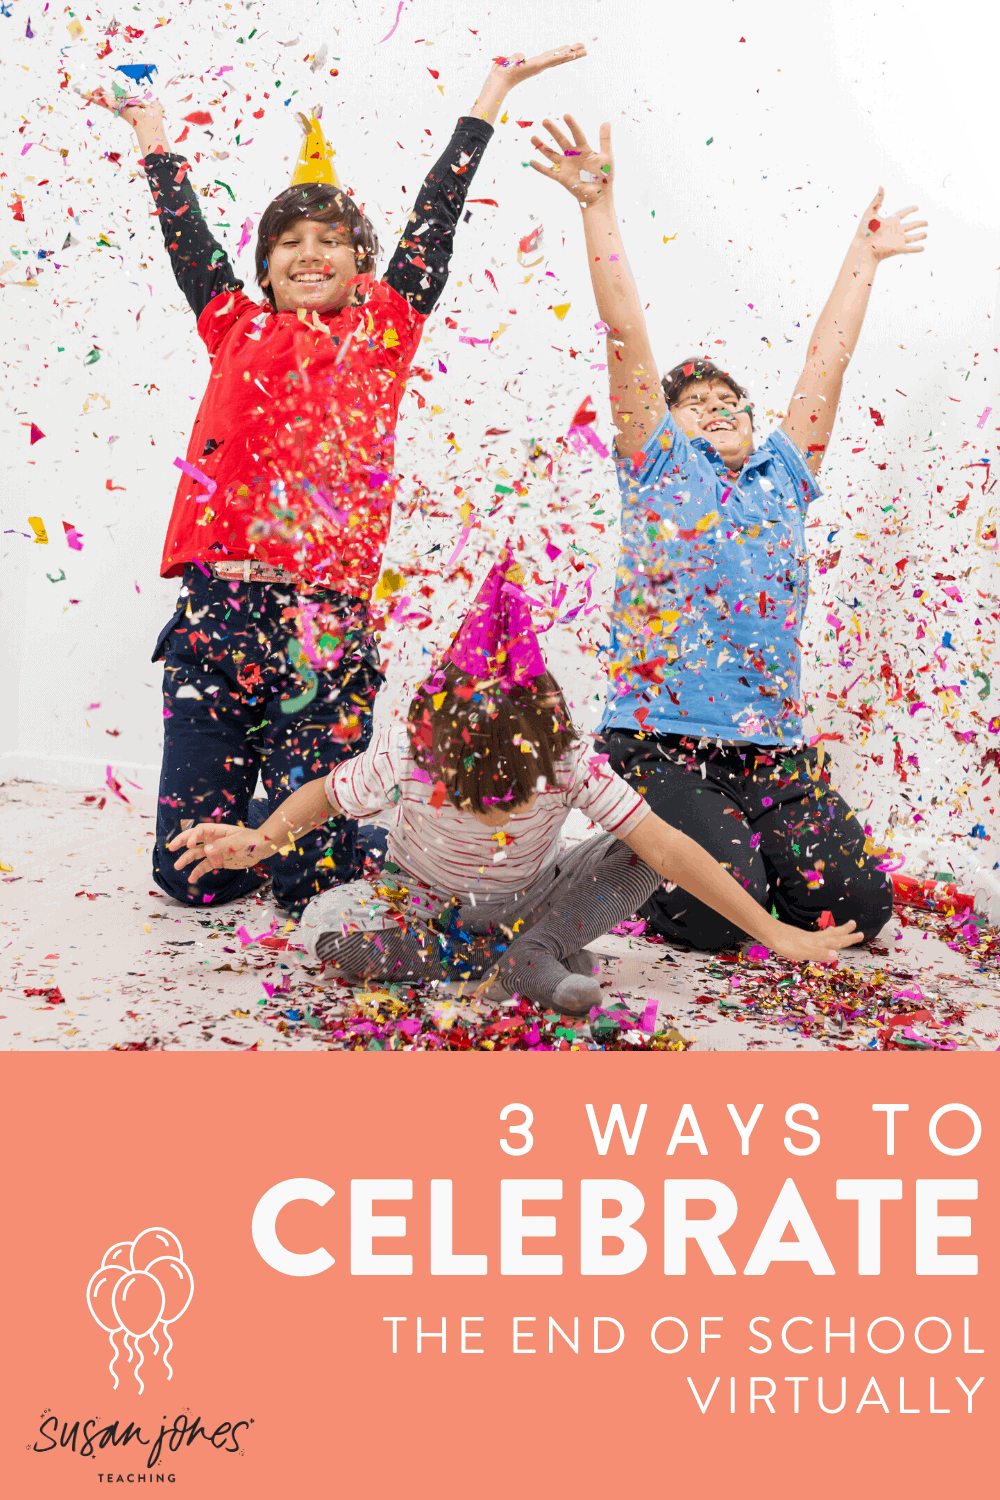 Hosting an end of the year celebration during distance learning? Here are 3 fun ways to host a virtual party, give out student awards, and even have a digital balloon pop celebration! Head to the post to read more and grab your freebies.